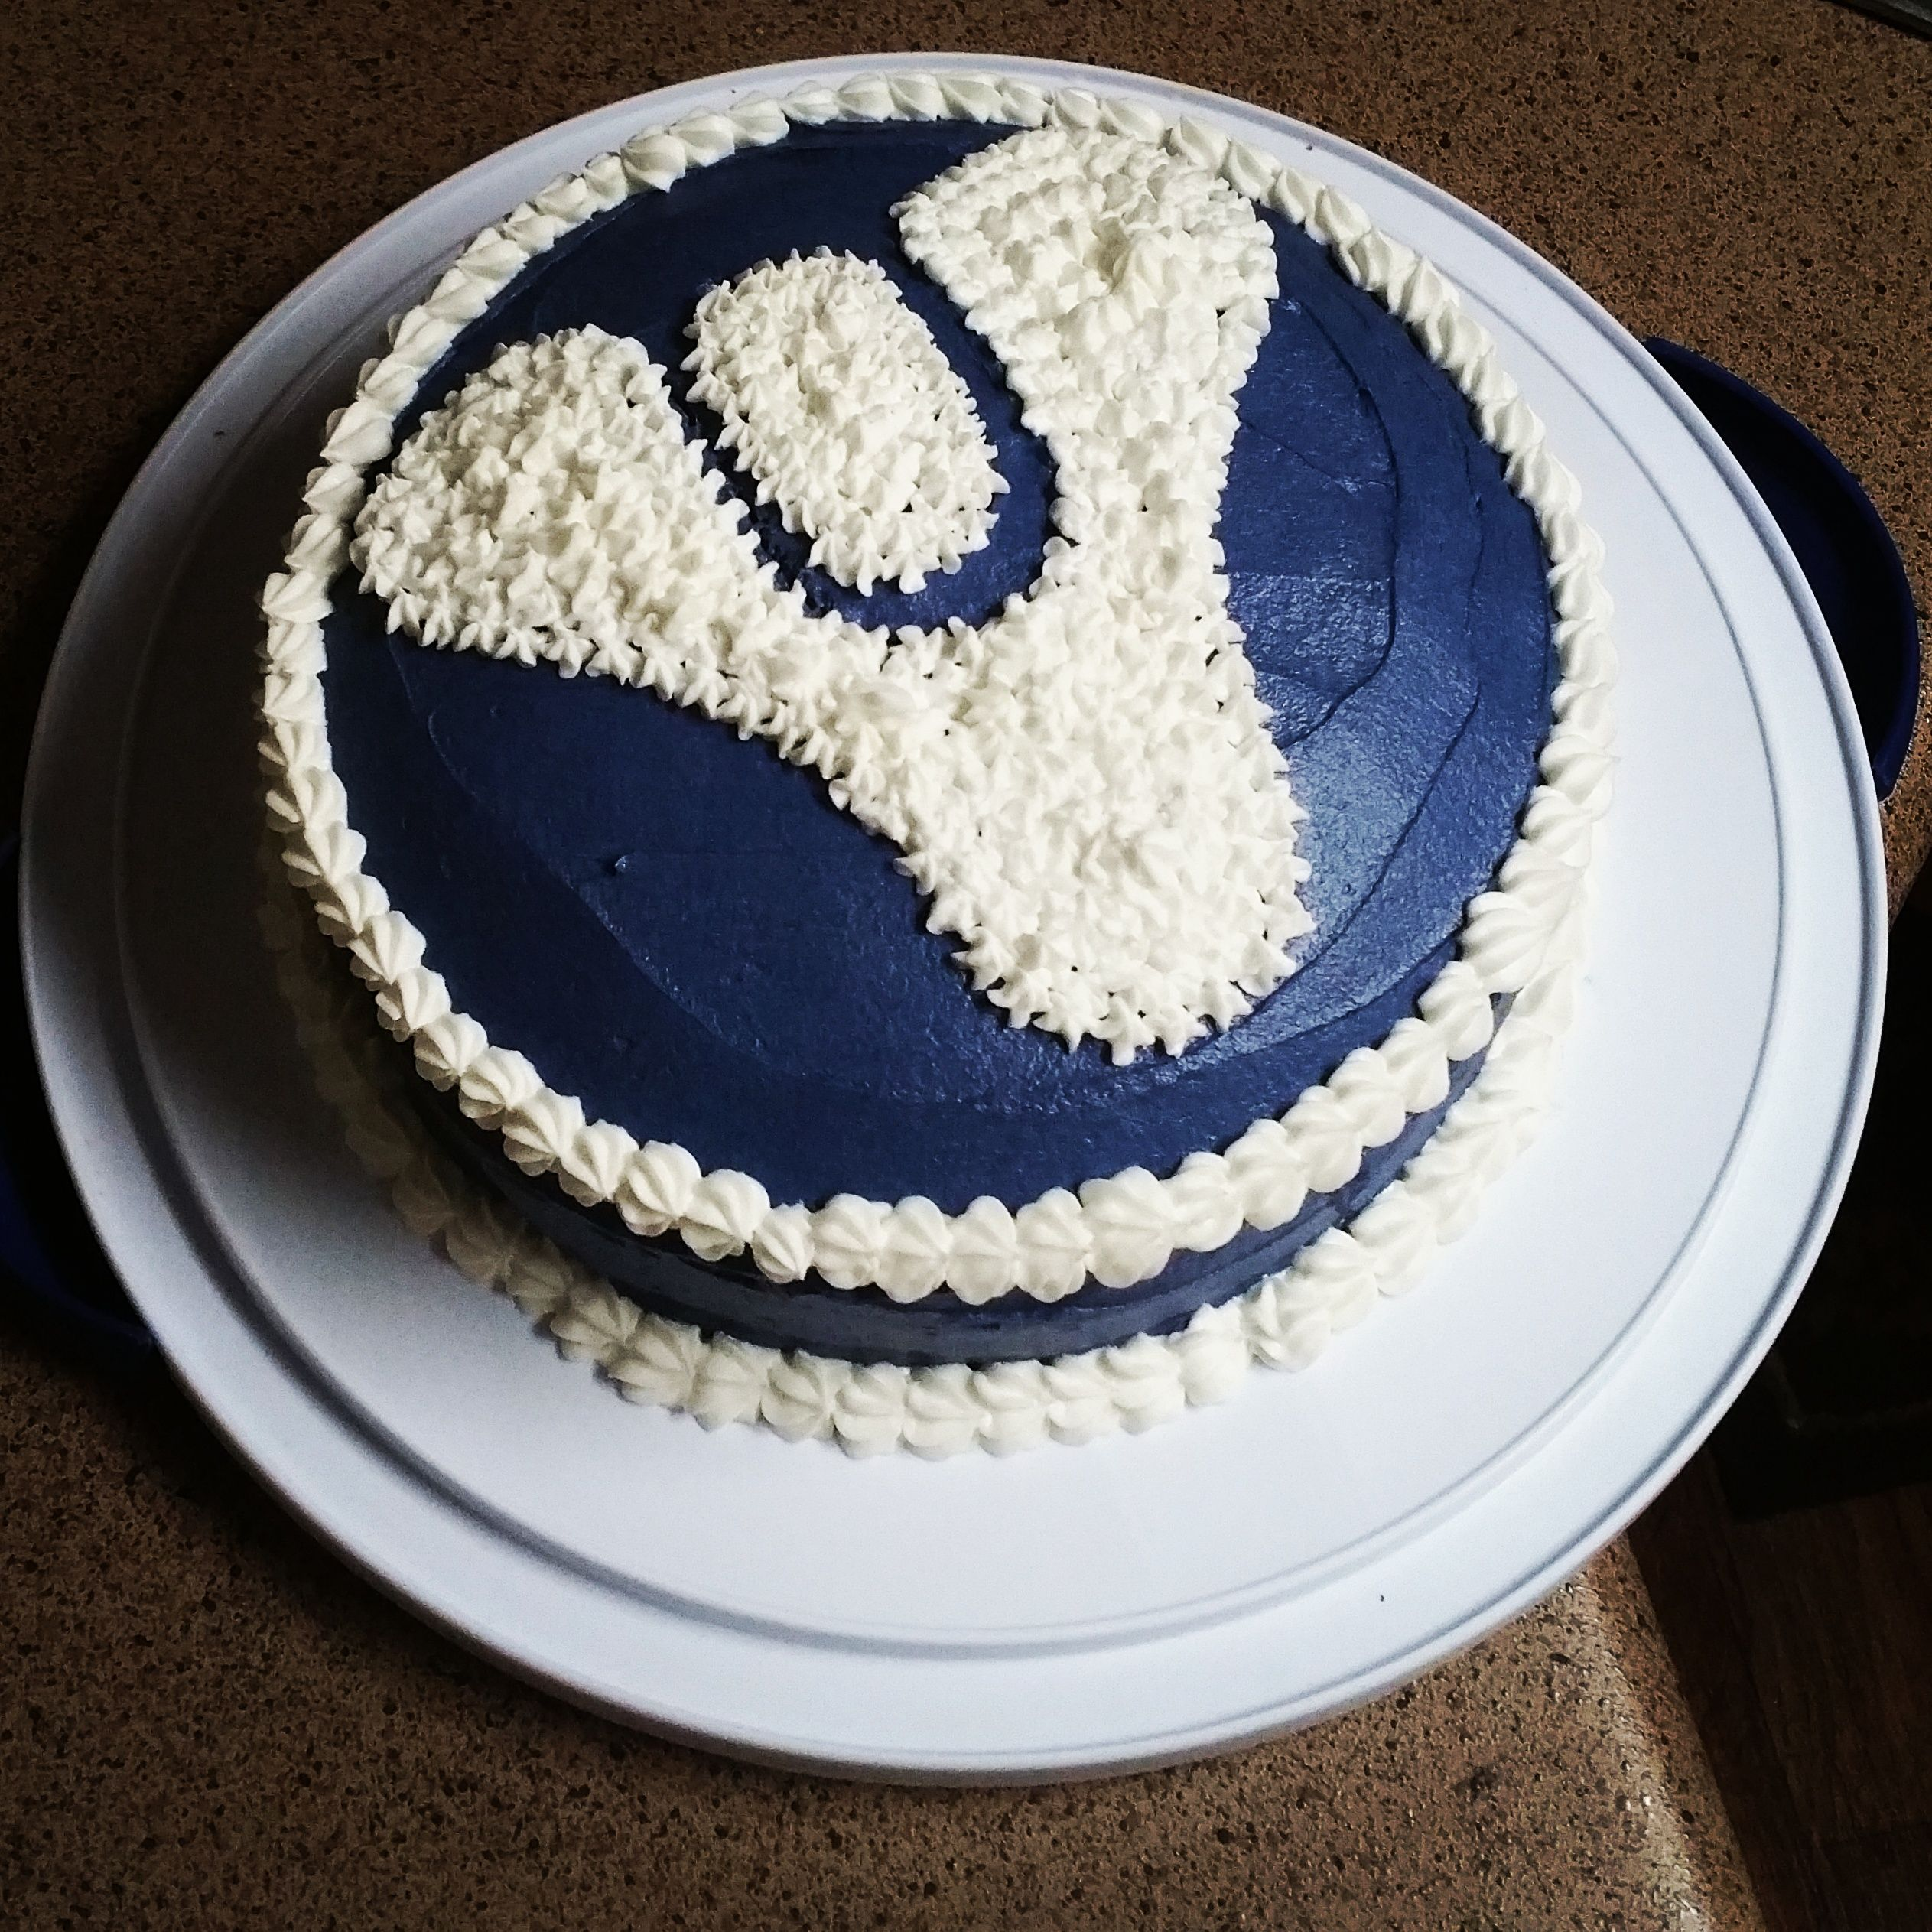 Ideas For A Destiny Video Game Themed Party